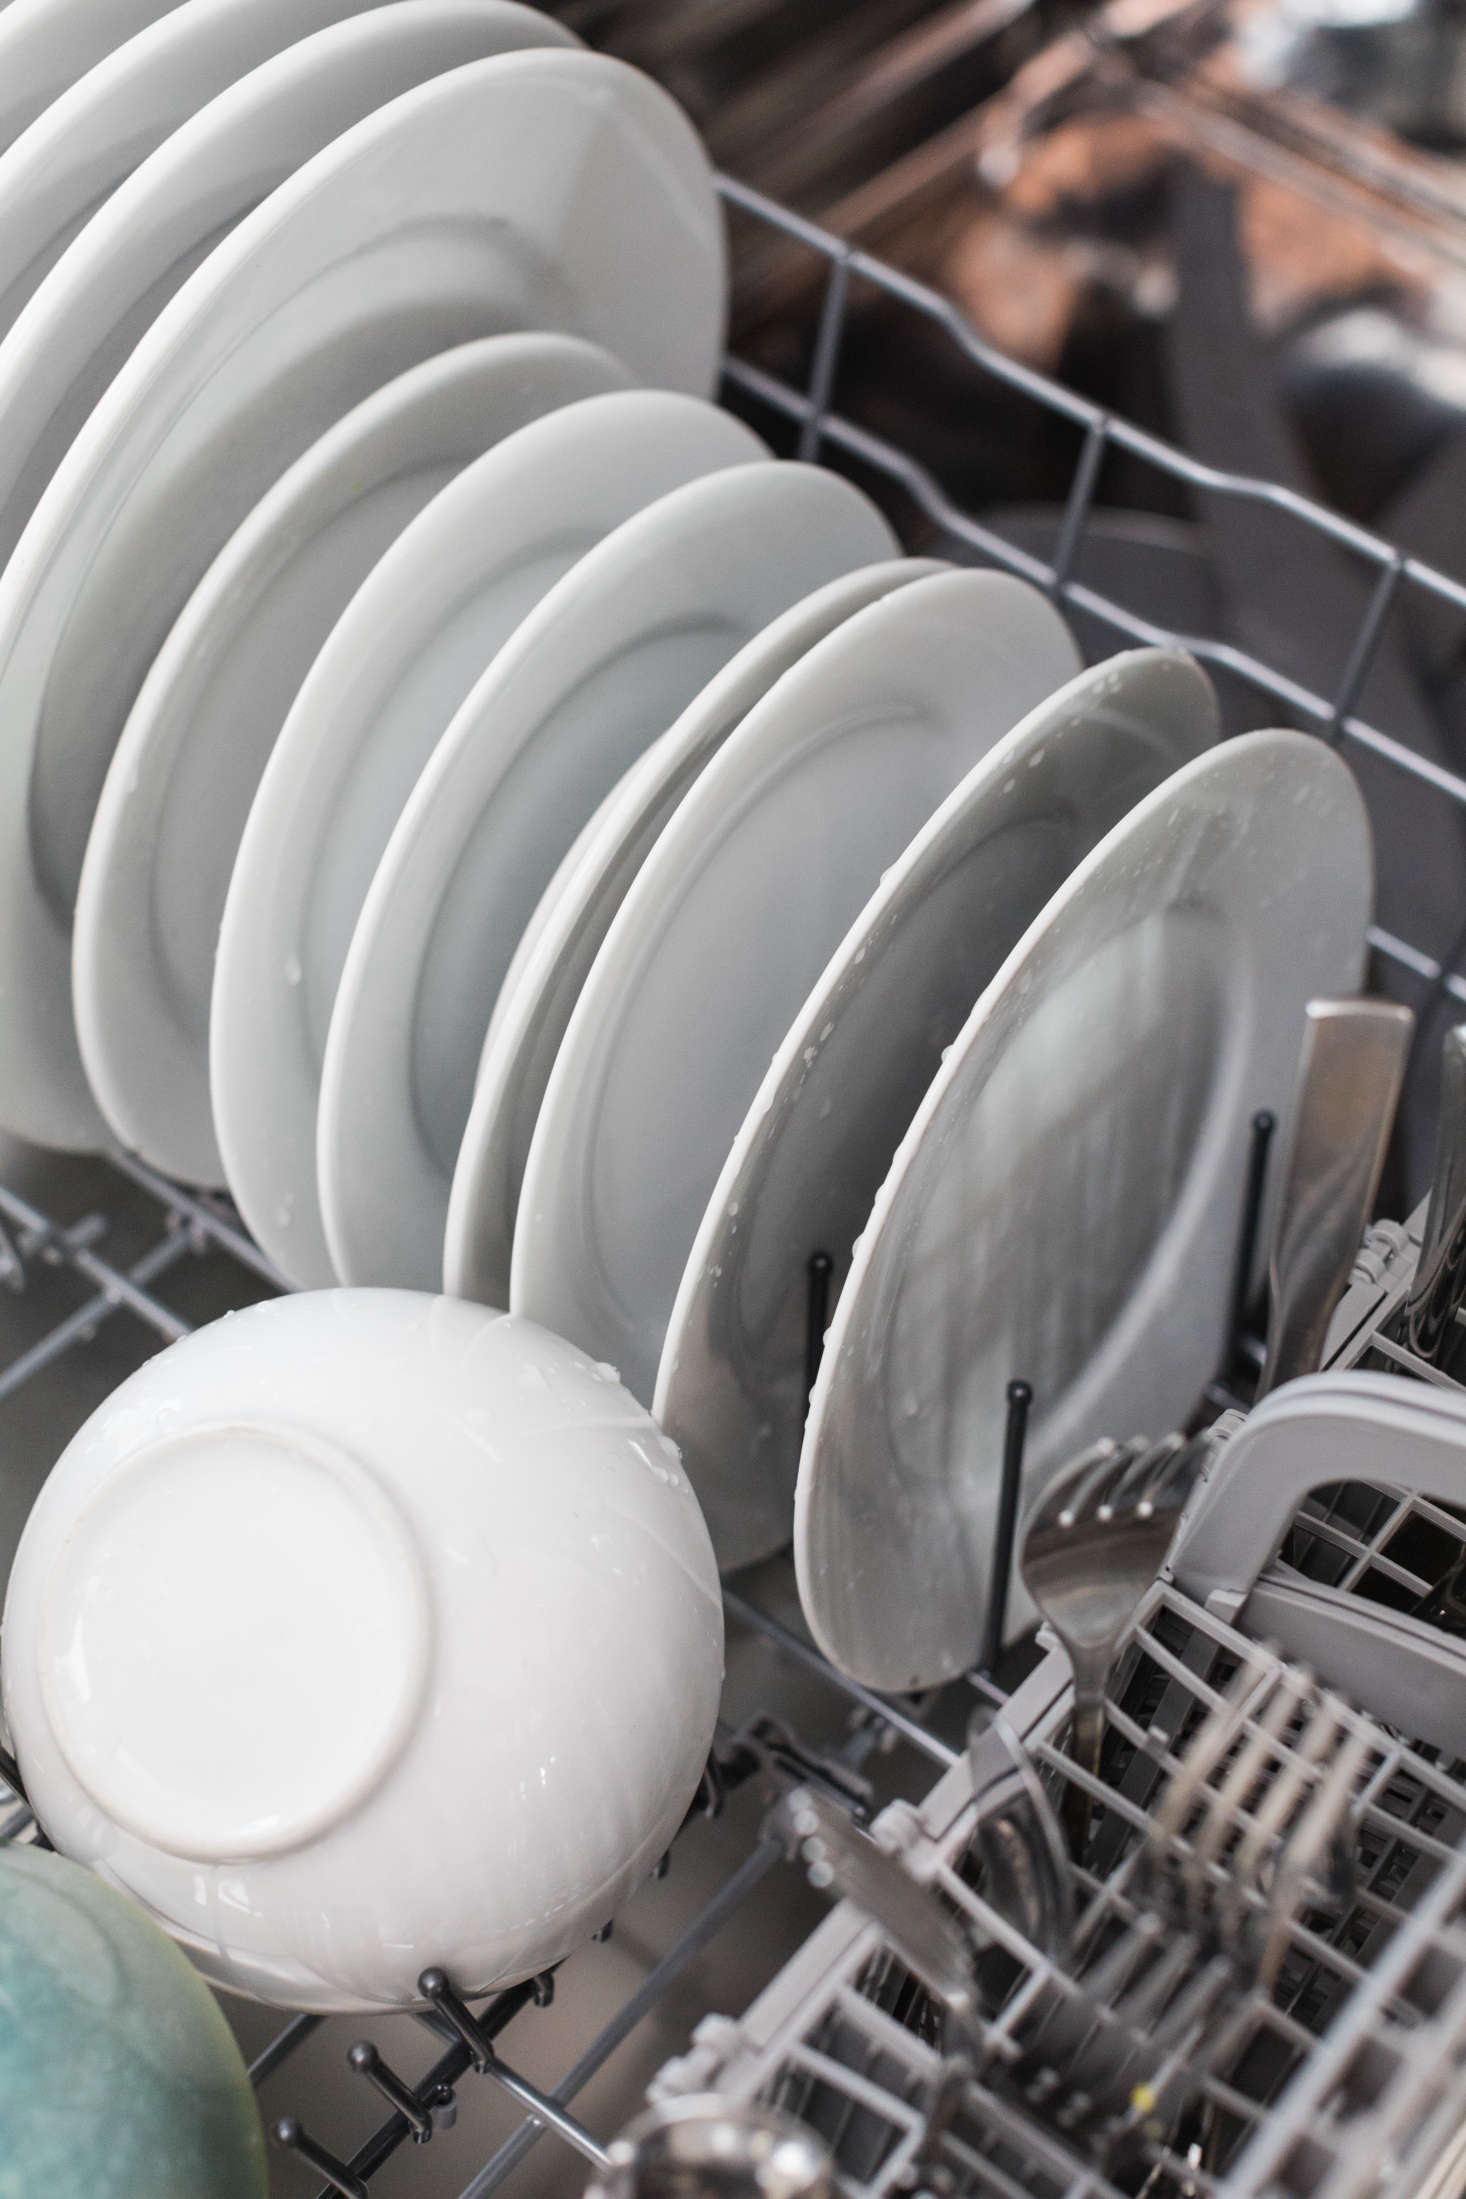 Contrary to popular belief, it is NOT necessary to rinse your dishes before loading them into the dishwasher. Most modern dishwashers are designed to handle, and actually perform better with, a bit of food.